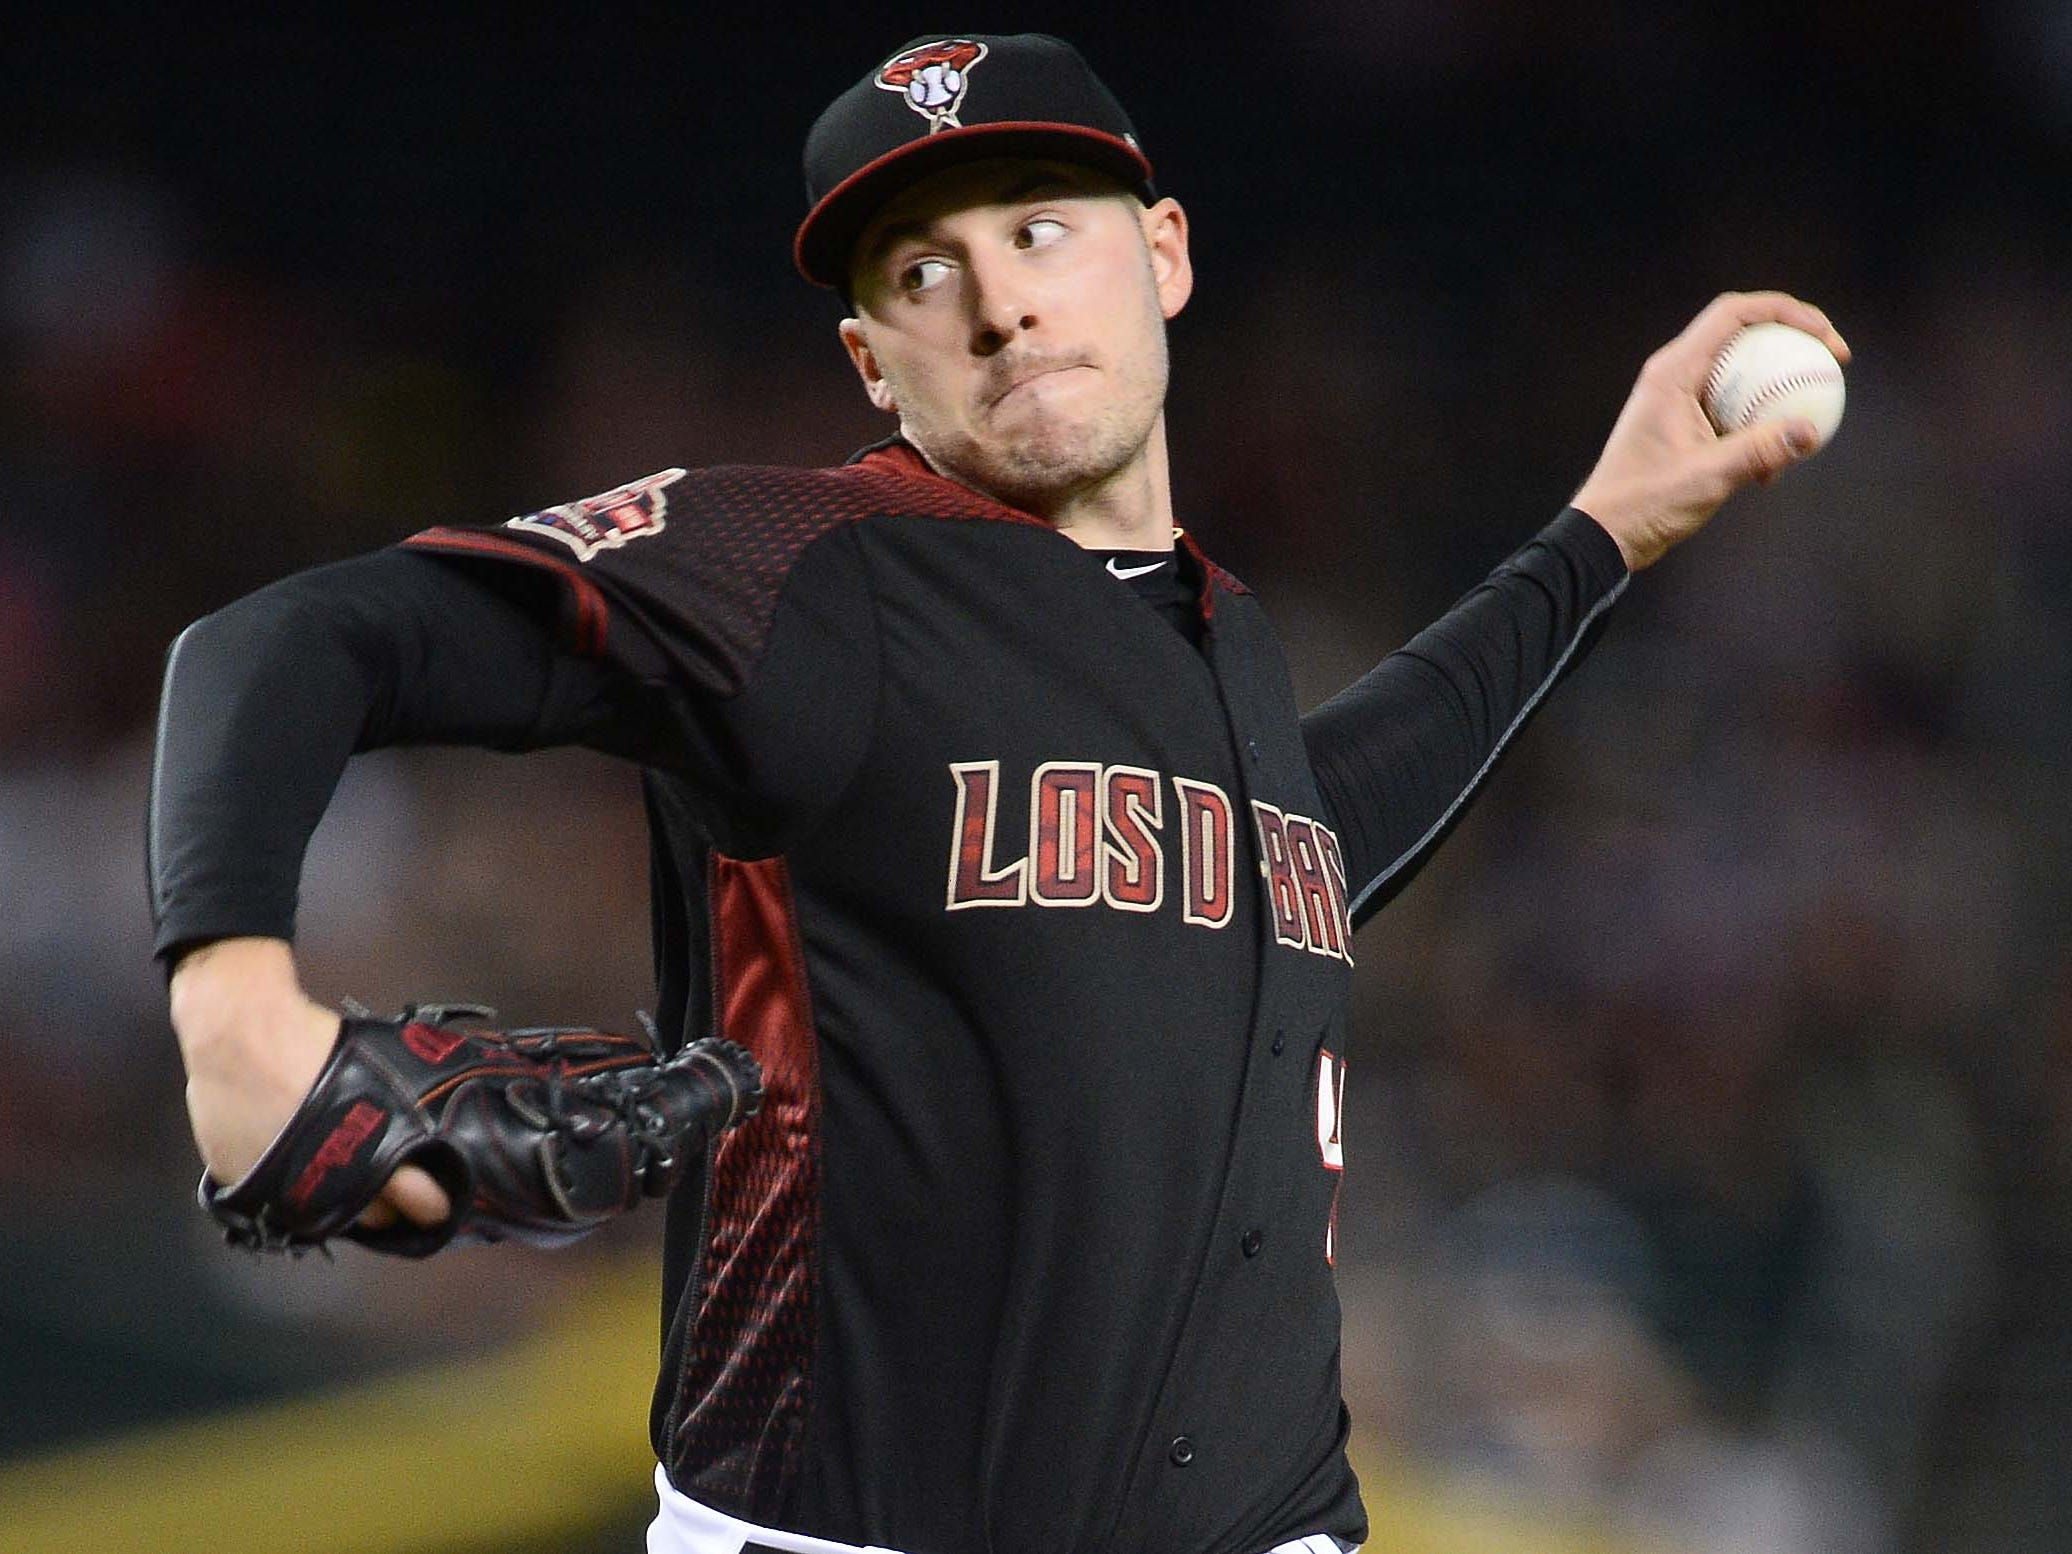 Sep 22, 2018; Phoenix, AZ, USA; Arizona Diamondbacks starting pitcher Patrick Corbin (46) pitches against the Colorado Rockies during the first inning at Chase Field.